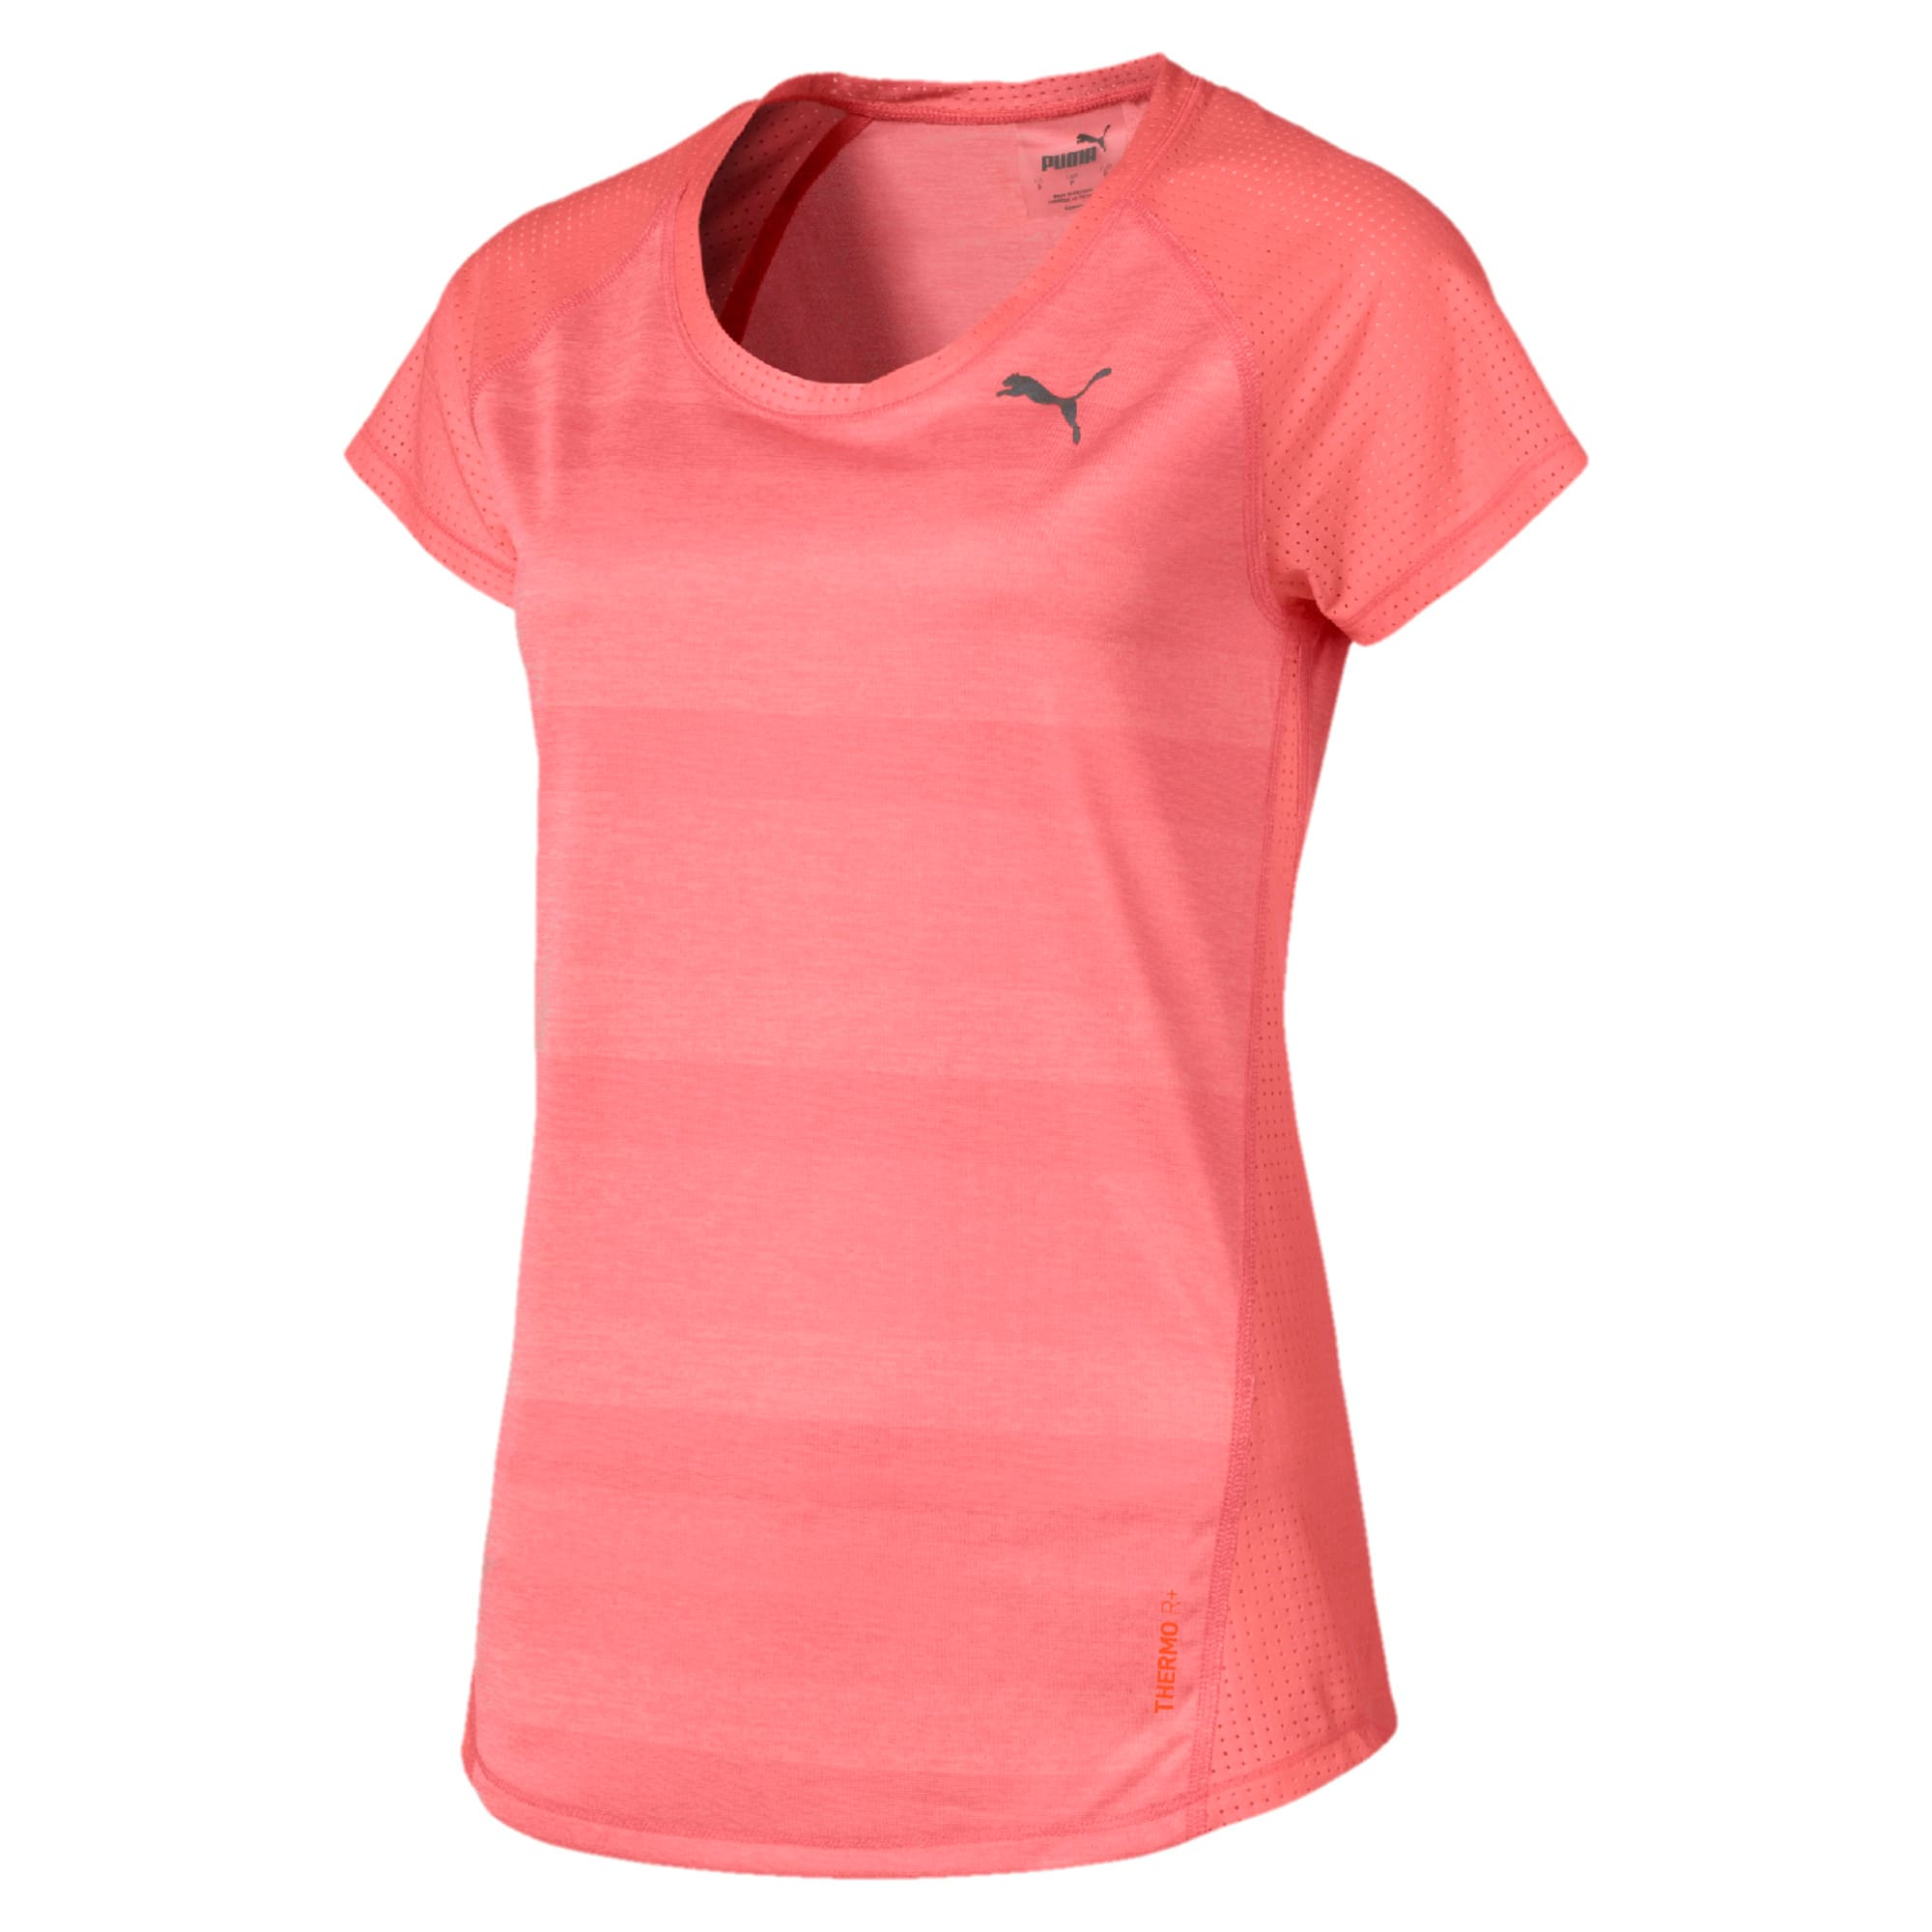 Thumbnail 4 of Thermo R+ Damen Running T-Shirt, Bright Peach Heather, medium